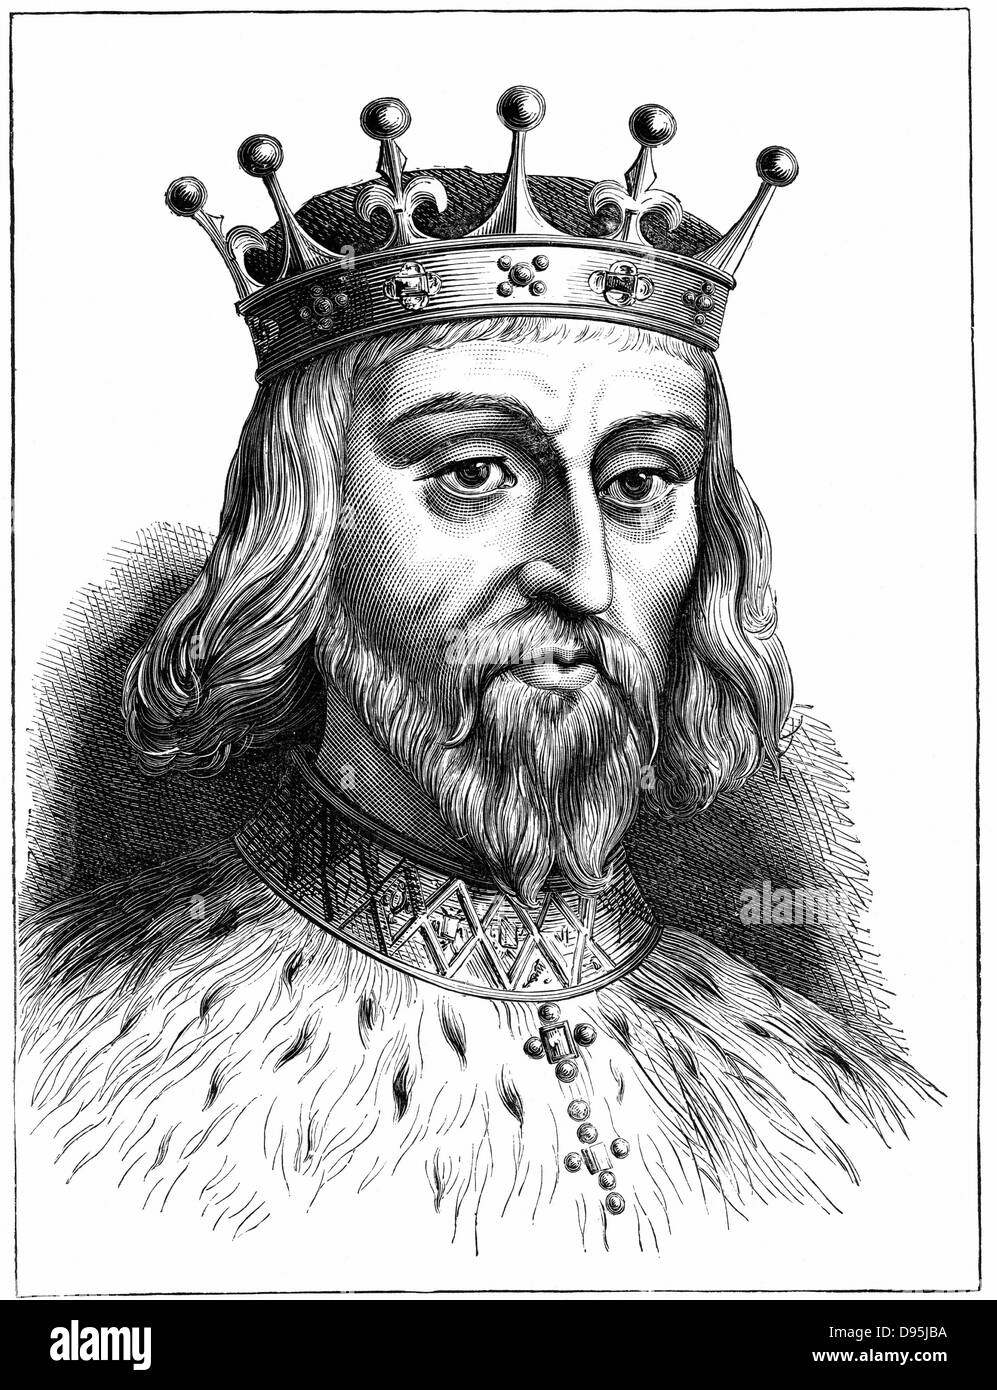 Henry II (1138-89) king of England from 1154. First Plantagenet king of England. Wood engraving. - Stock Image